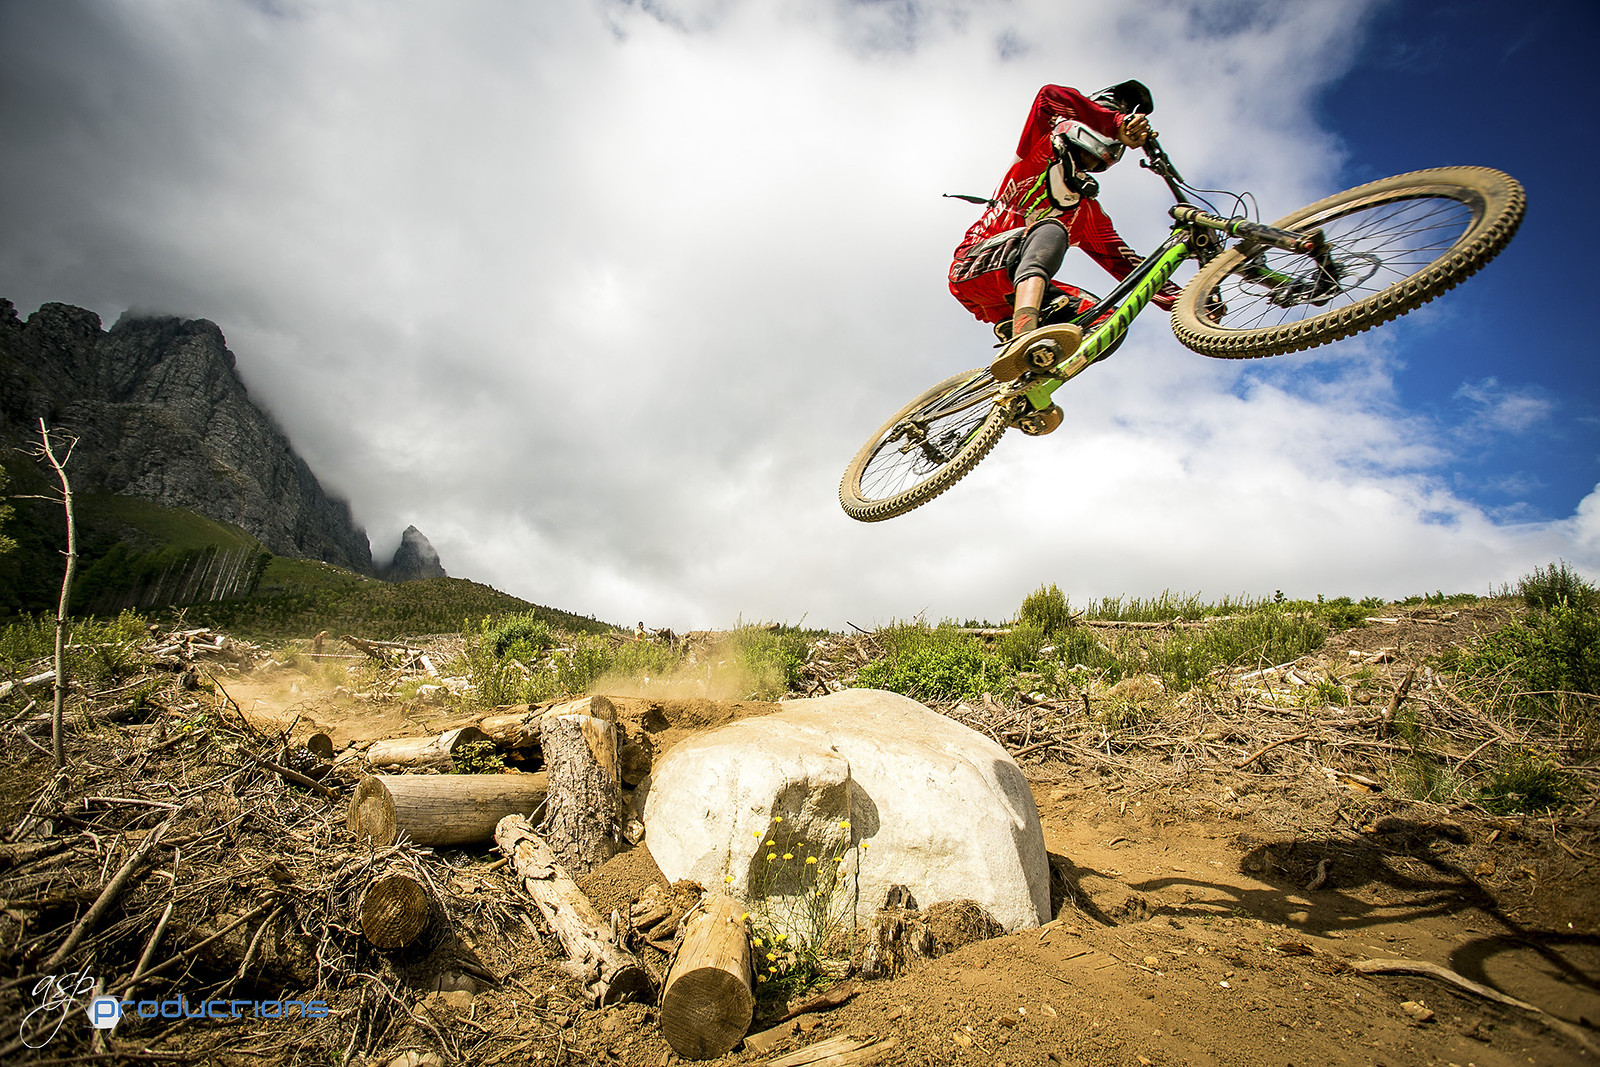 Jonkershoek Race Line - Alexbsearle - Mountain Biking Pictures - Vital MTB